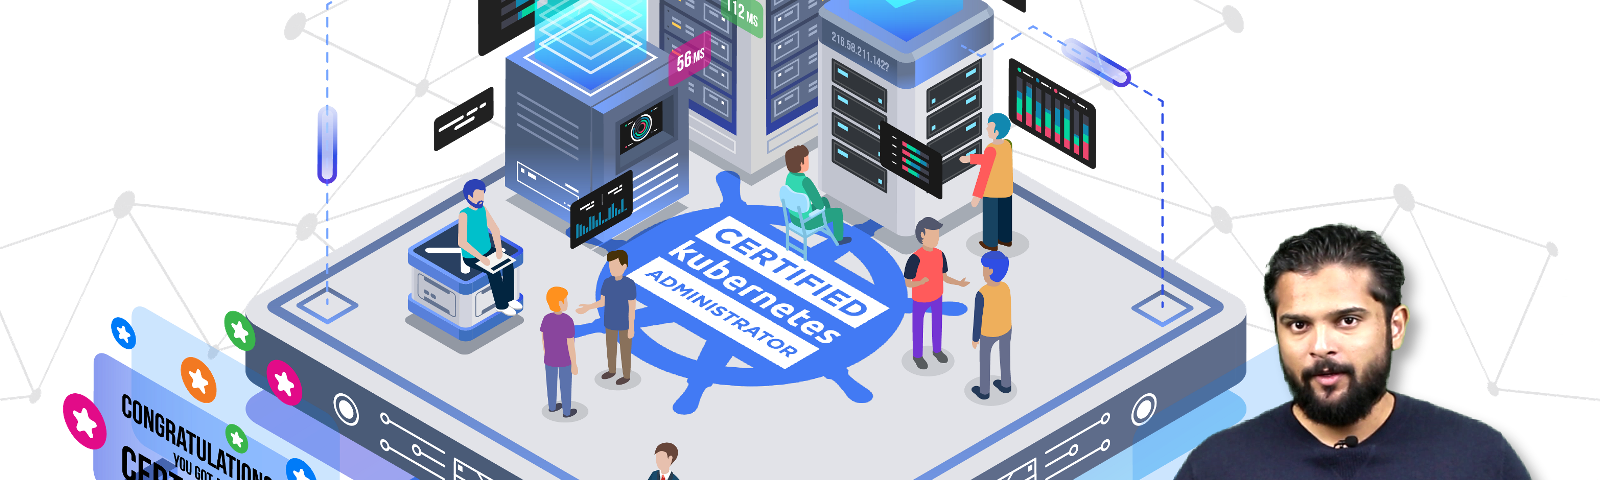 All stories published by codeburst on May 04, 2019